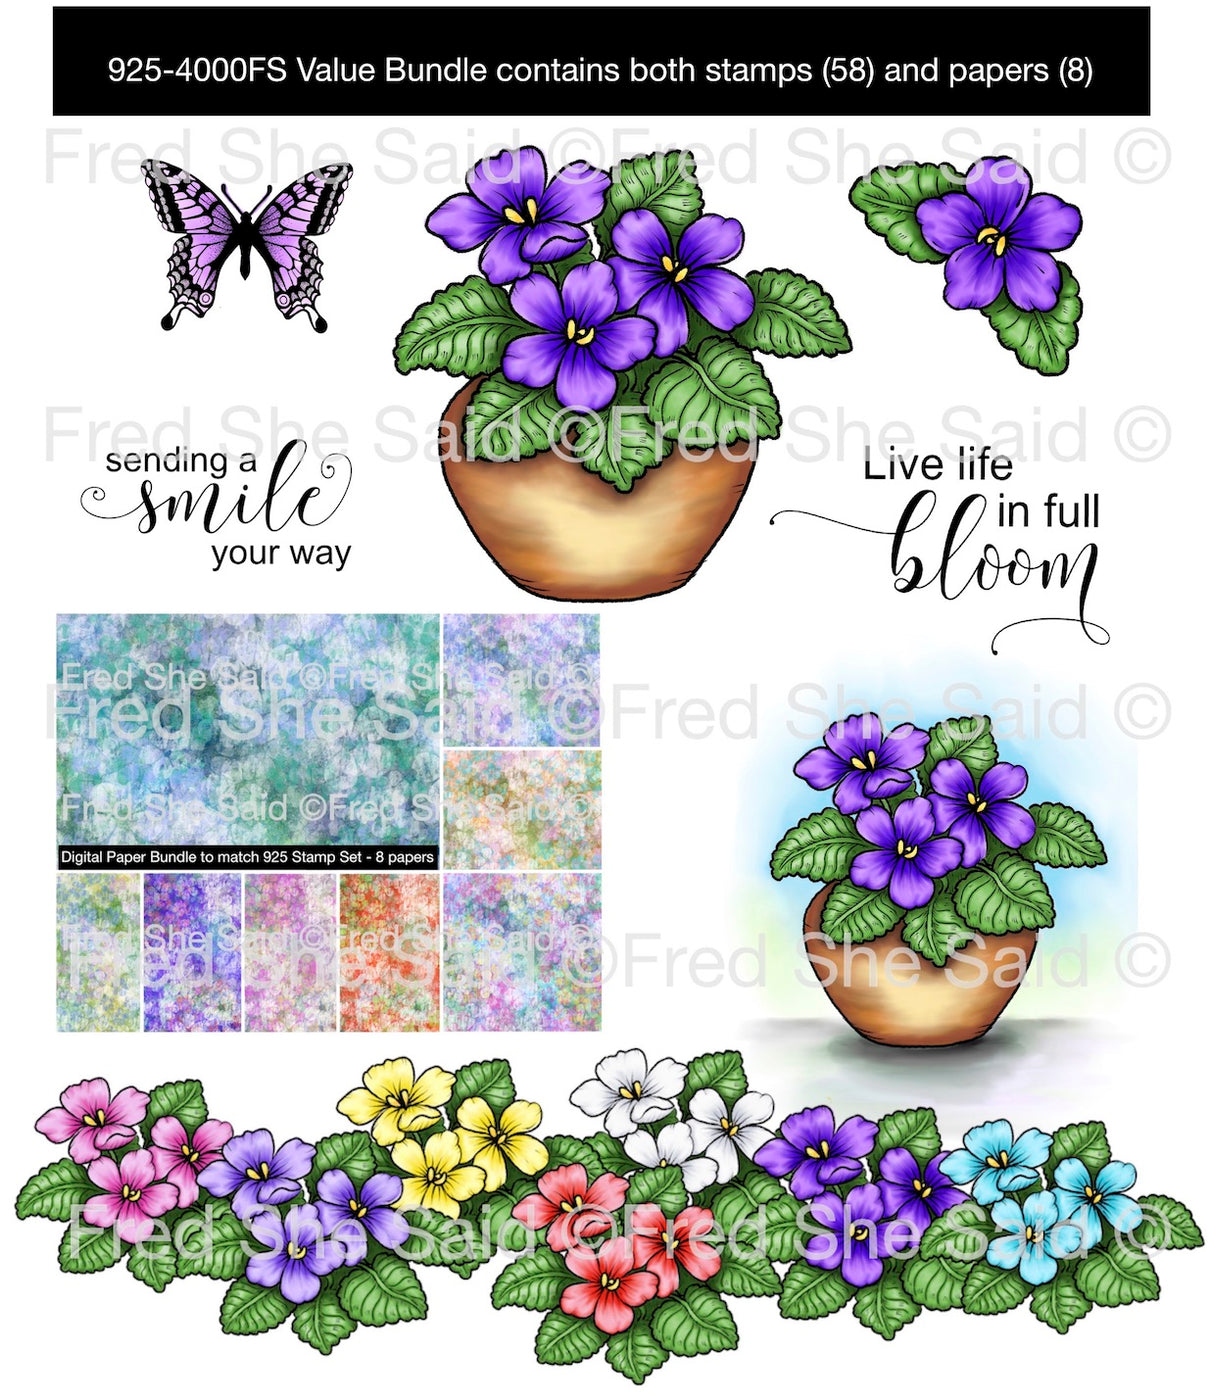 New   Violets for You Digital Stamp Set Bundle [DIGI925-4008FS]